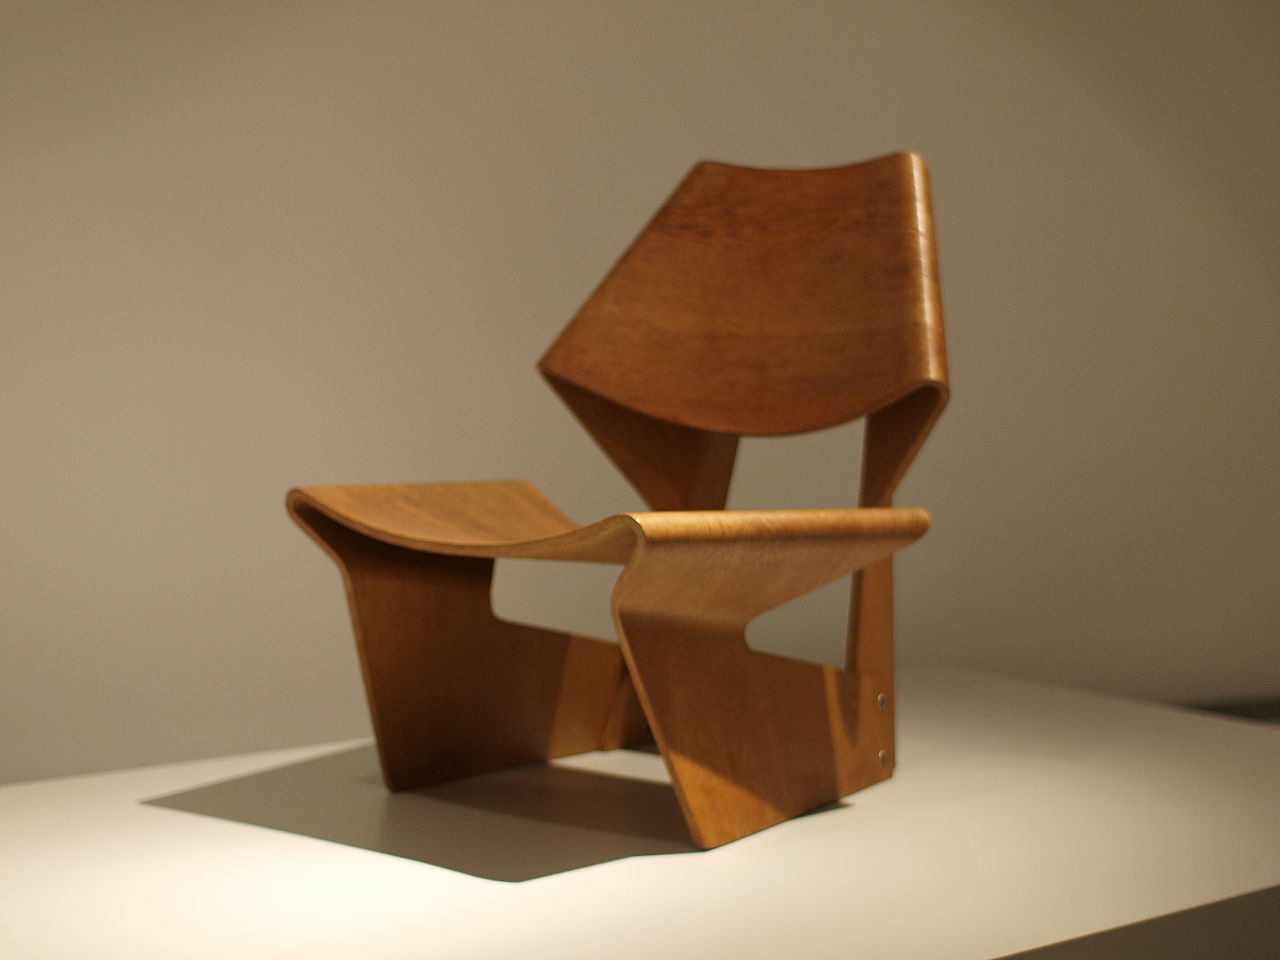 G J chair ◘ tomislav medak via wikipedia